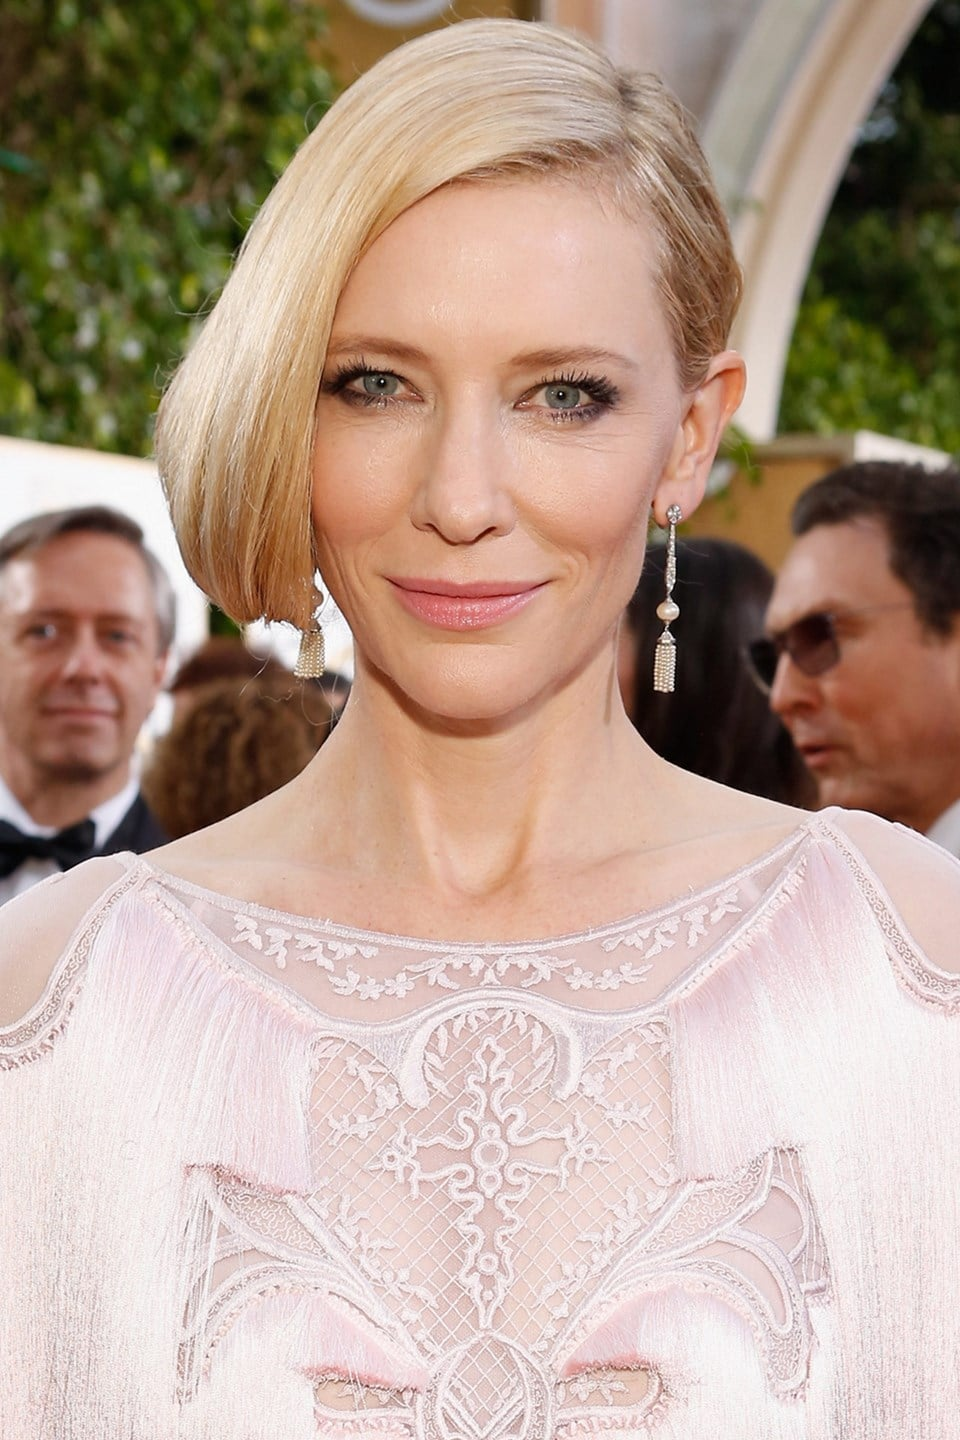 Cate-Blanchett-beauty-Glamour-10Jan15-Getty_b_960x1440.jpg